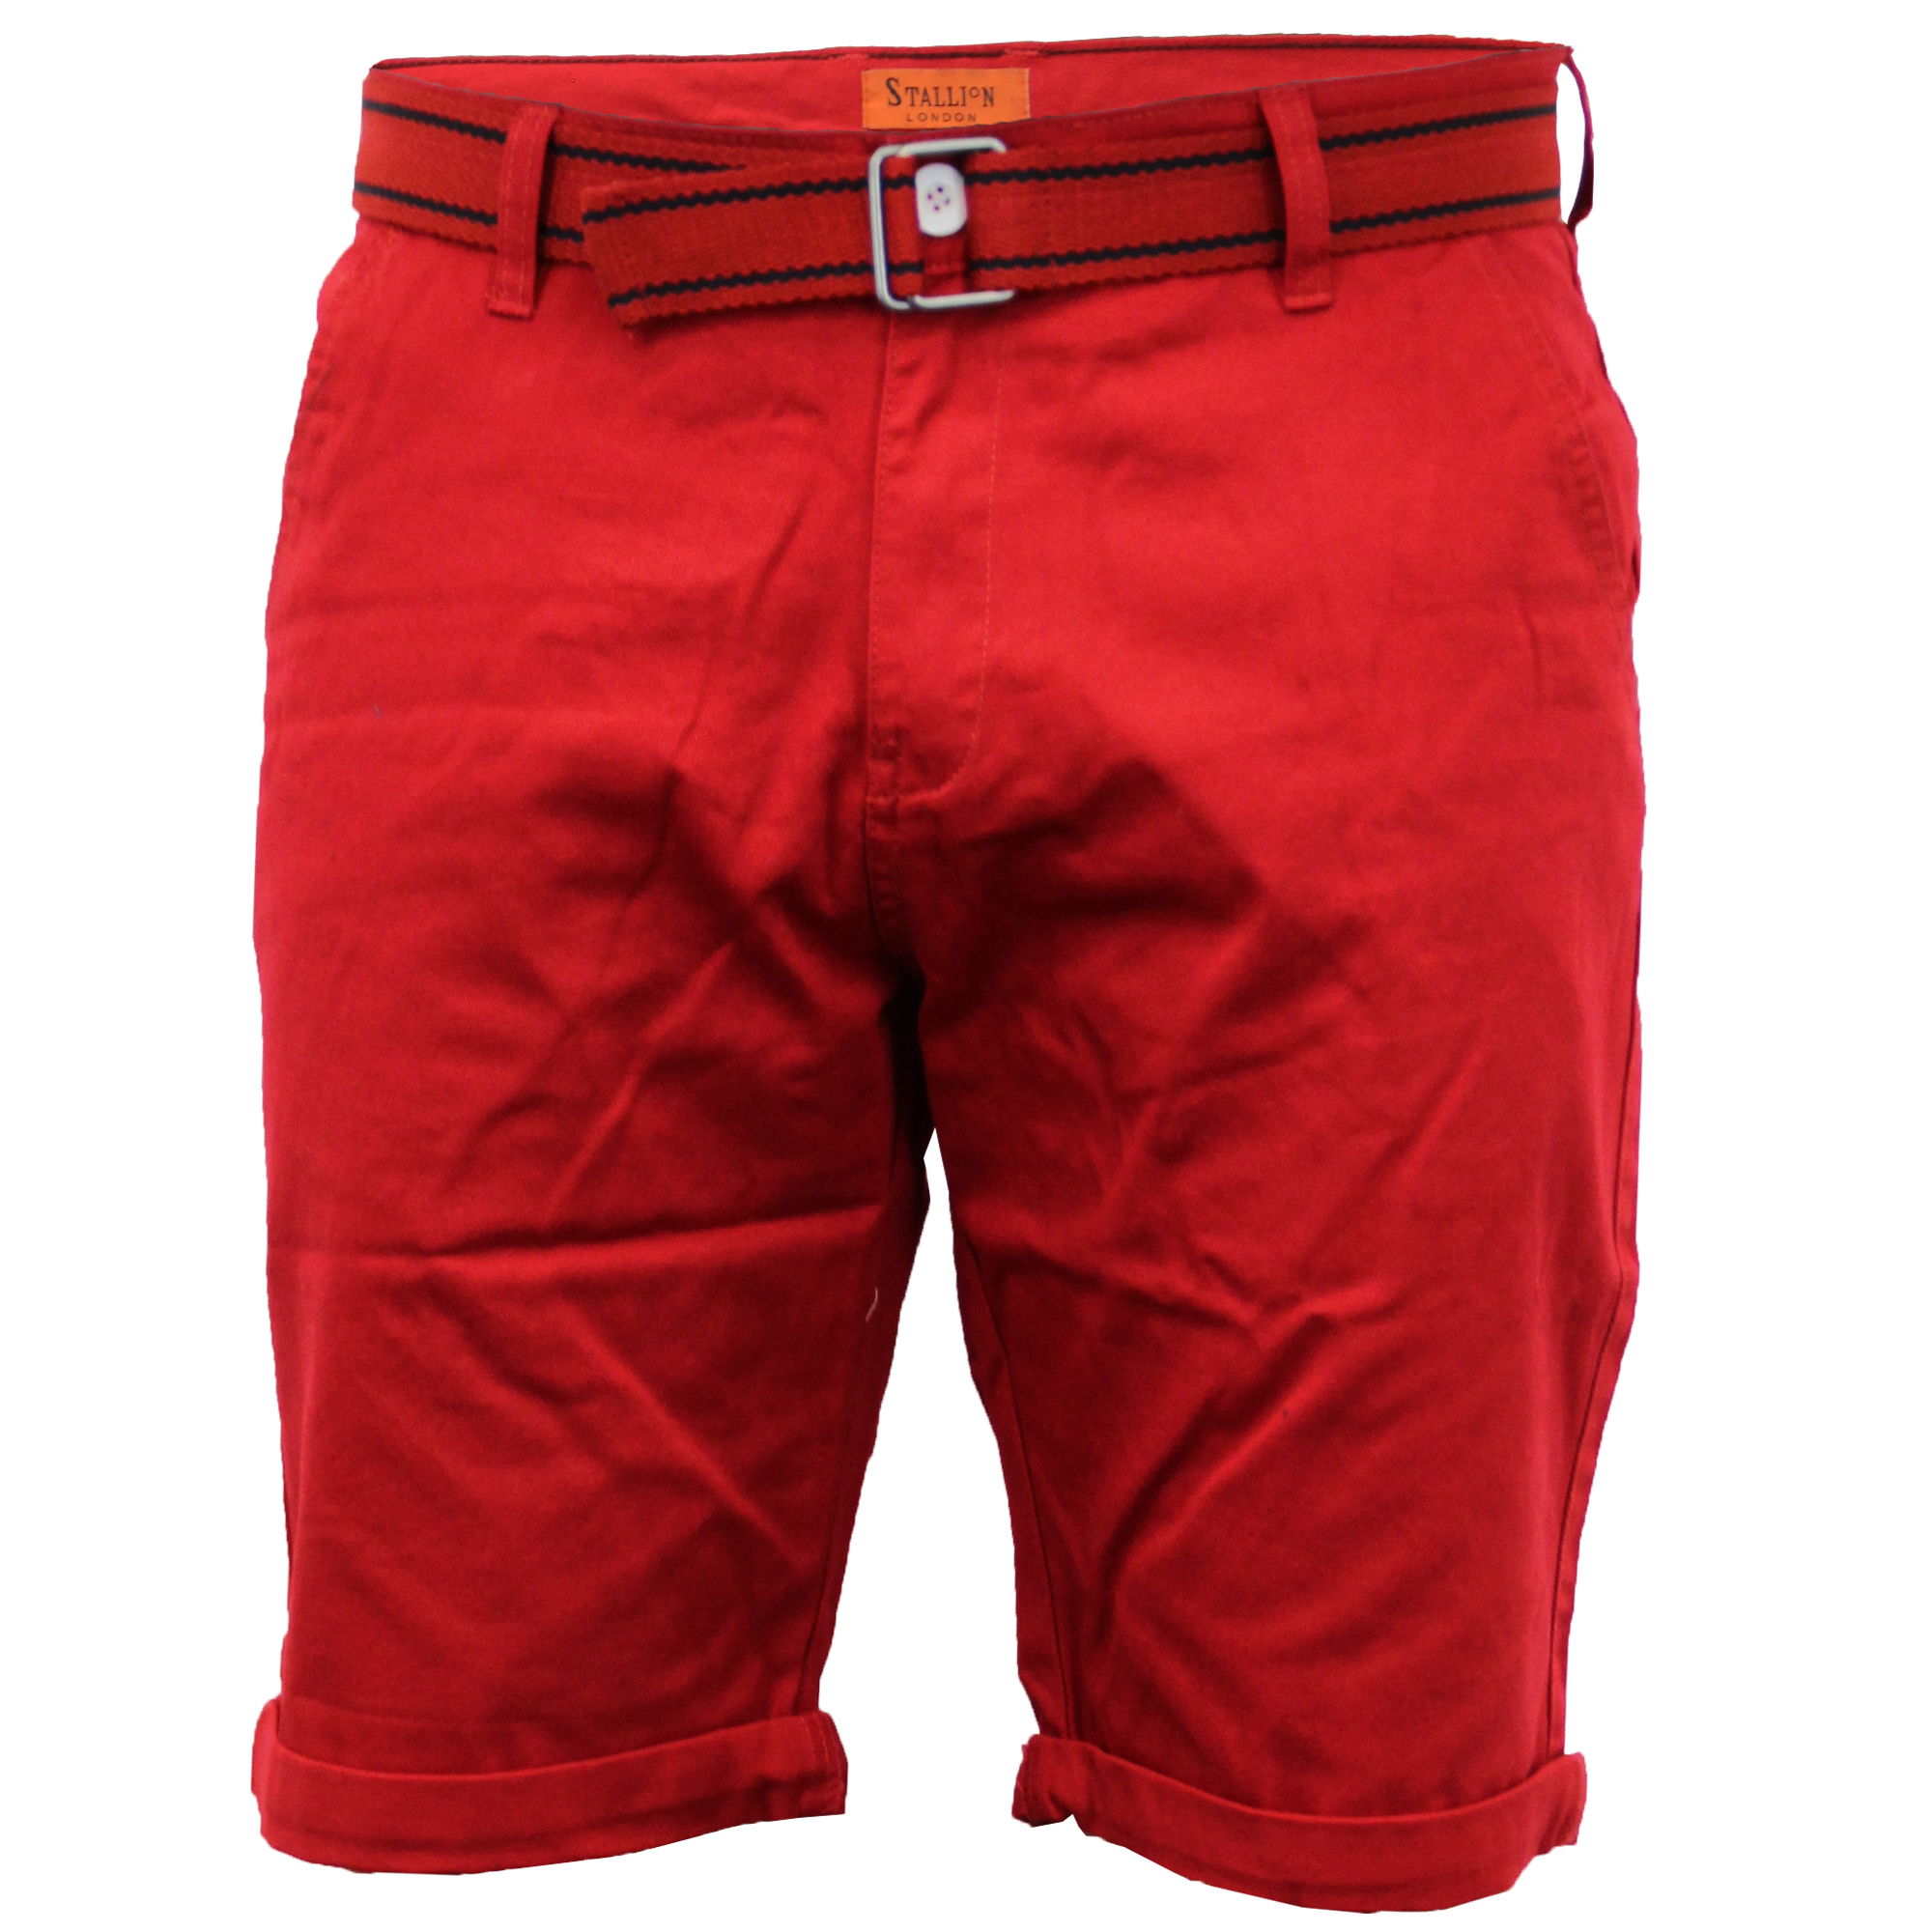 Mens-Chino-Shorts-Threadbare-Cotton-Oxford-Belted-Loyalty-amp-Faith-Seven-Series thumbnail 38